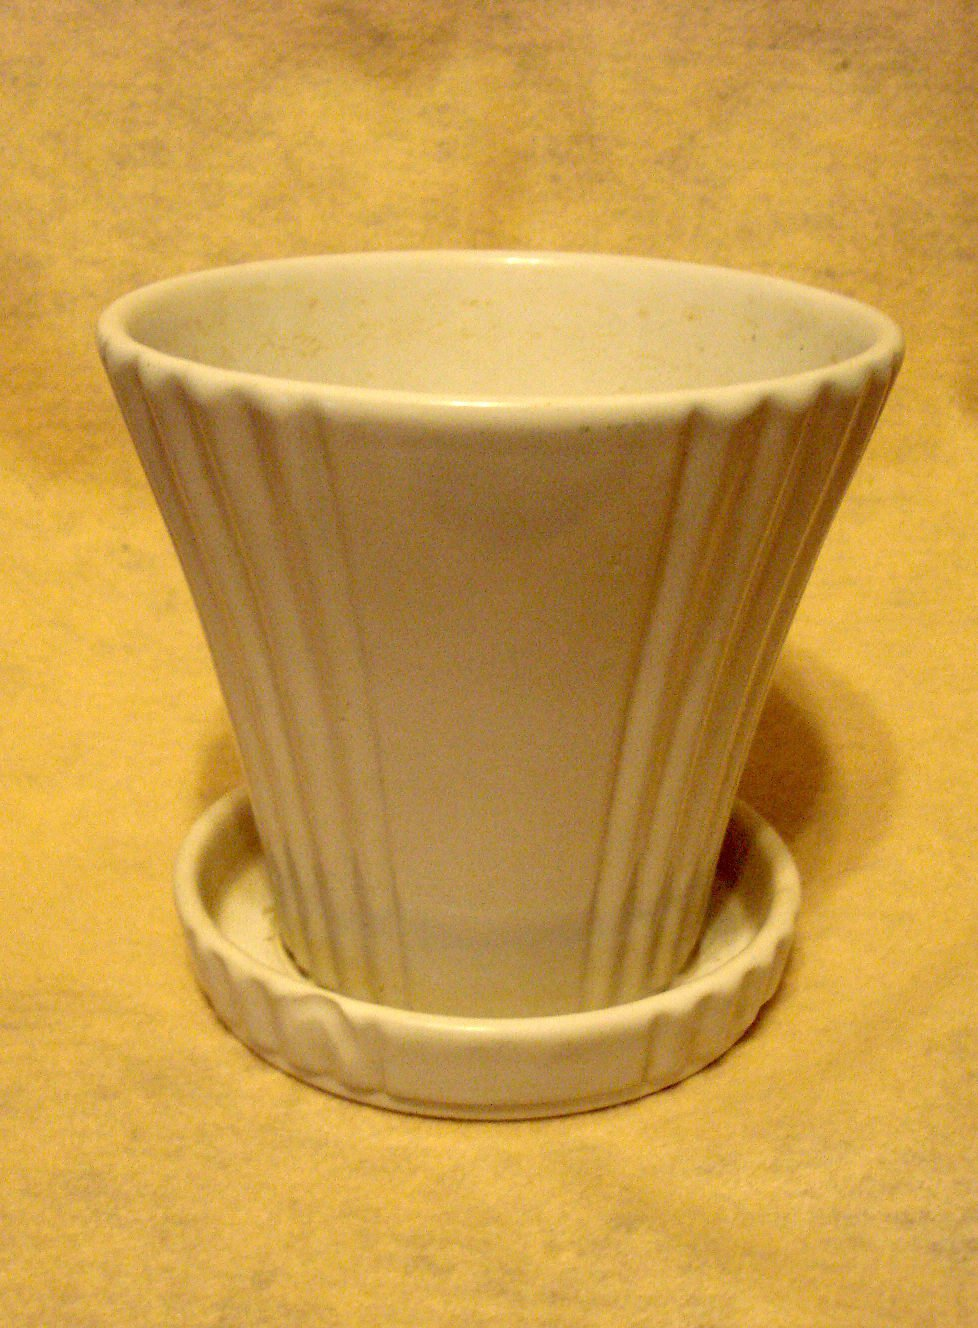 White Ribbed Abingdon 6 inch High Planter attached Saucer, No. 152S